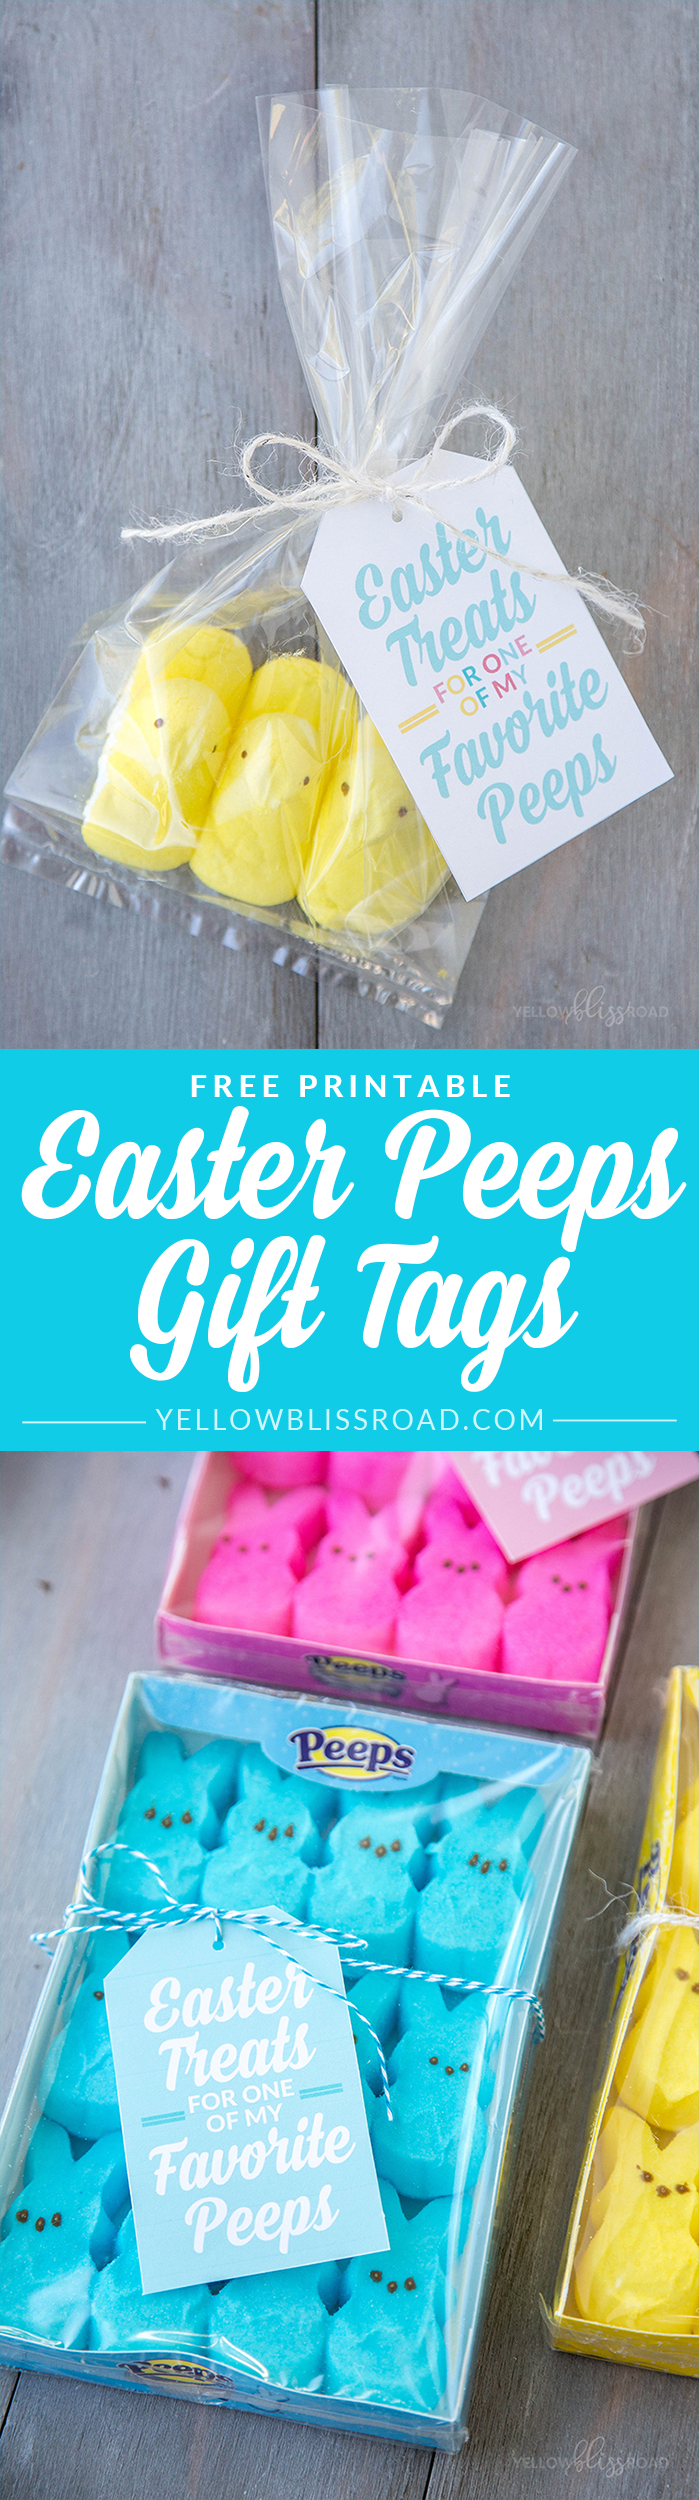 Peeps easter gift idea with free printables free printable free printable peeps gifts tags for easter cute classroom friends or neighbor easter gifts negle Images